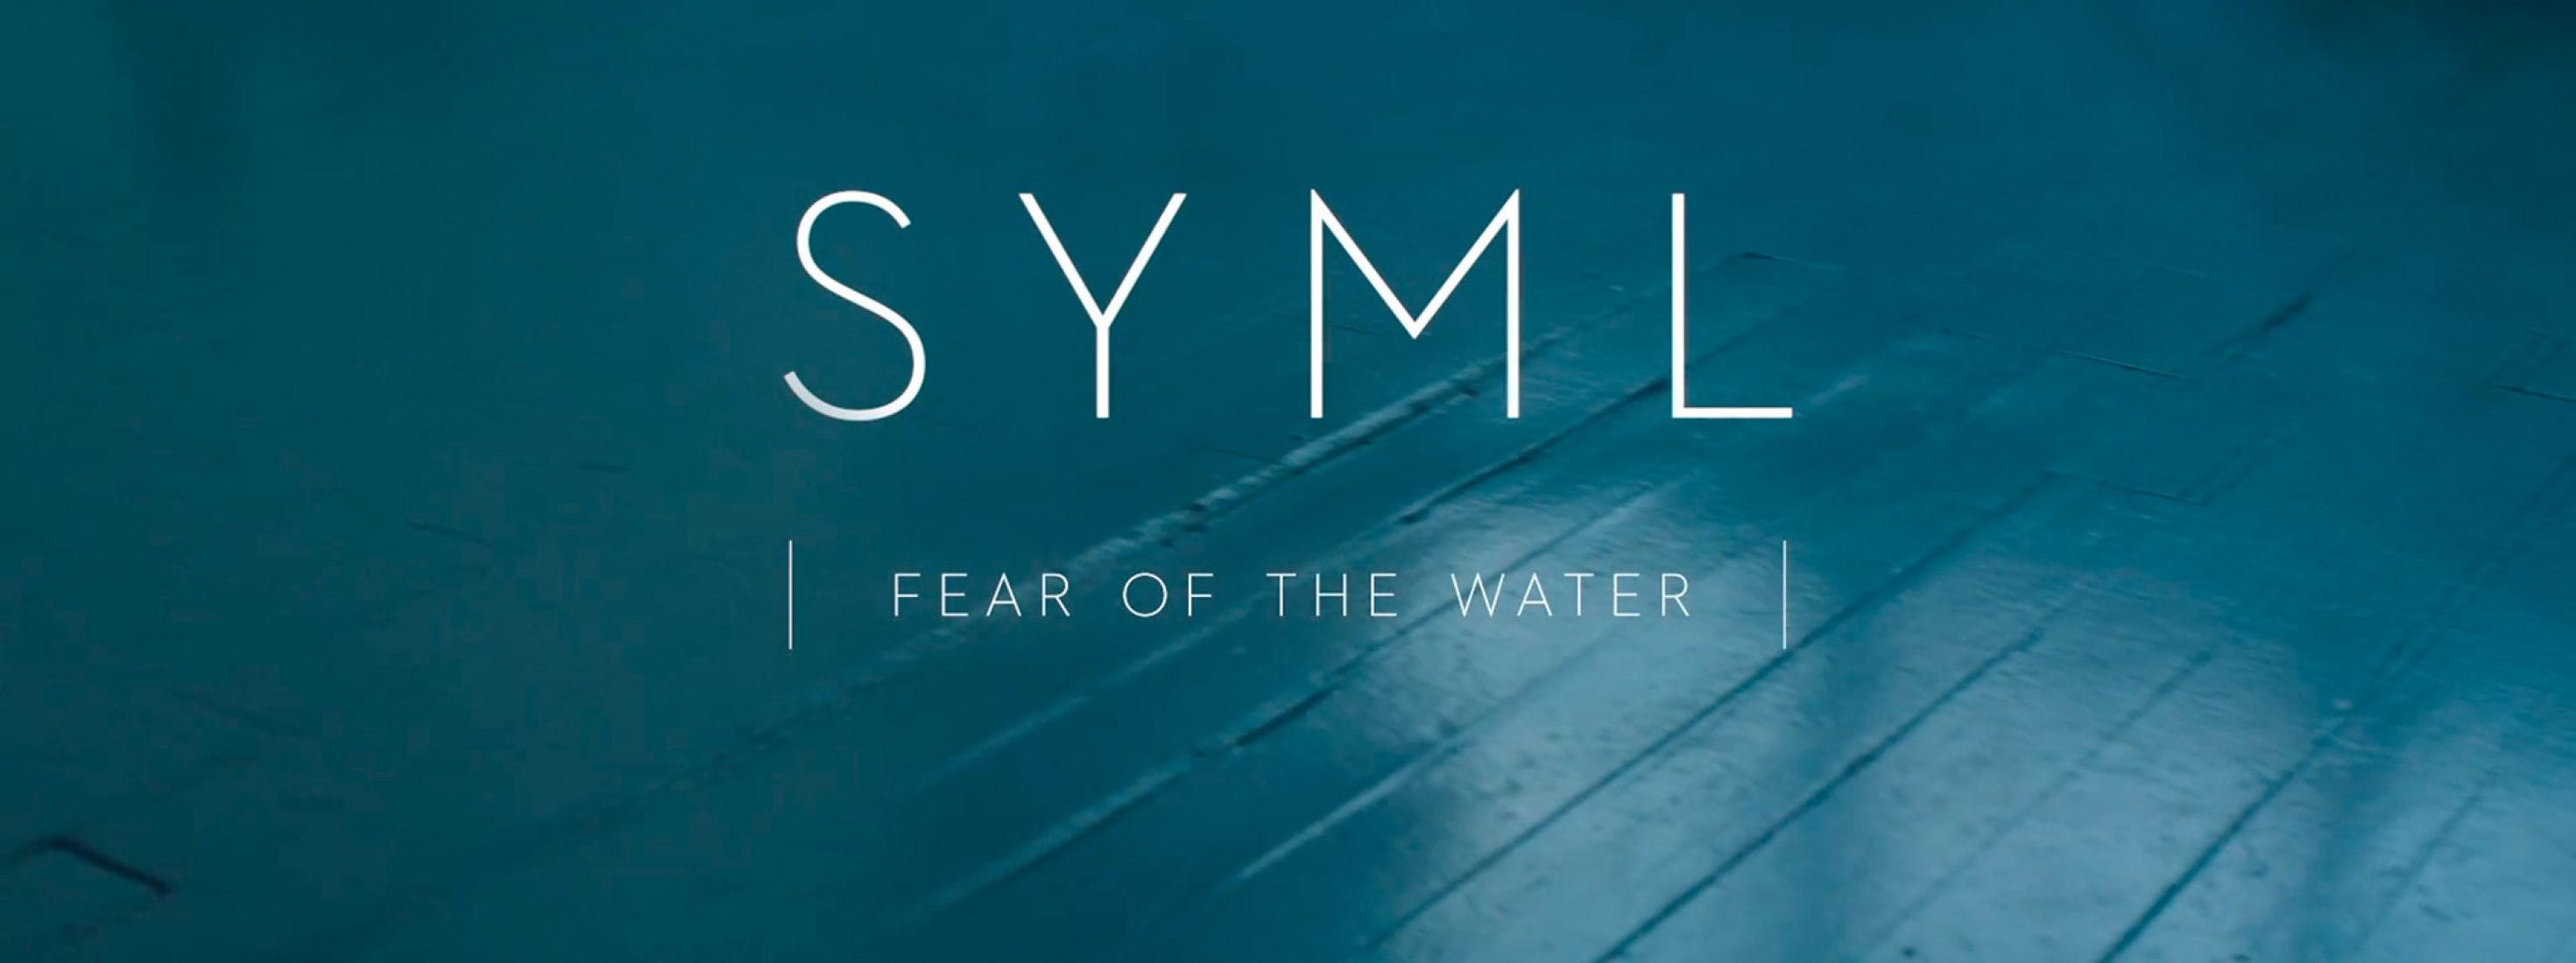 Fear of the Water by SYML